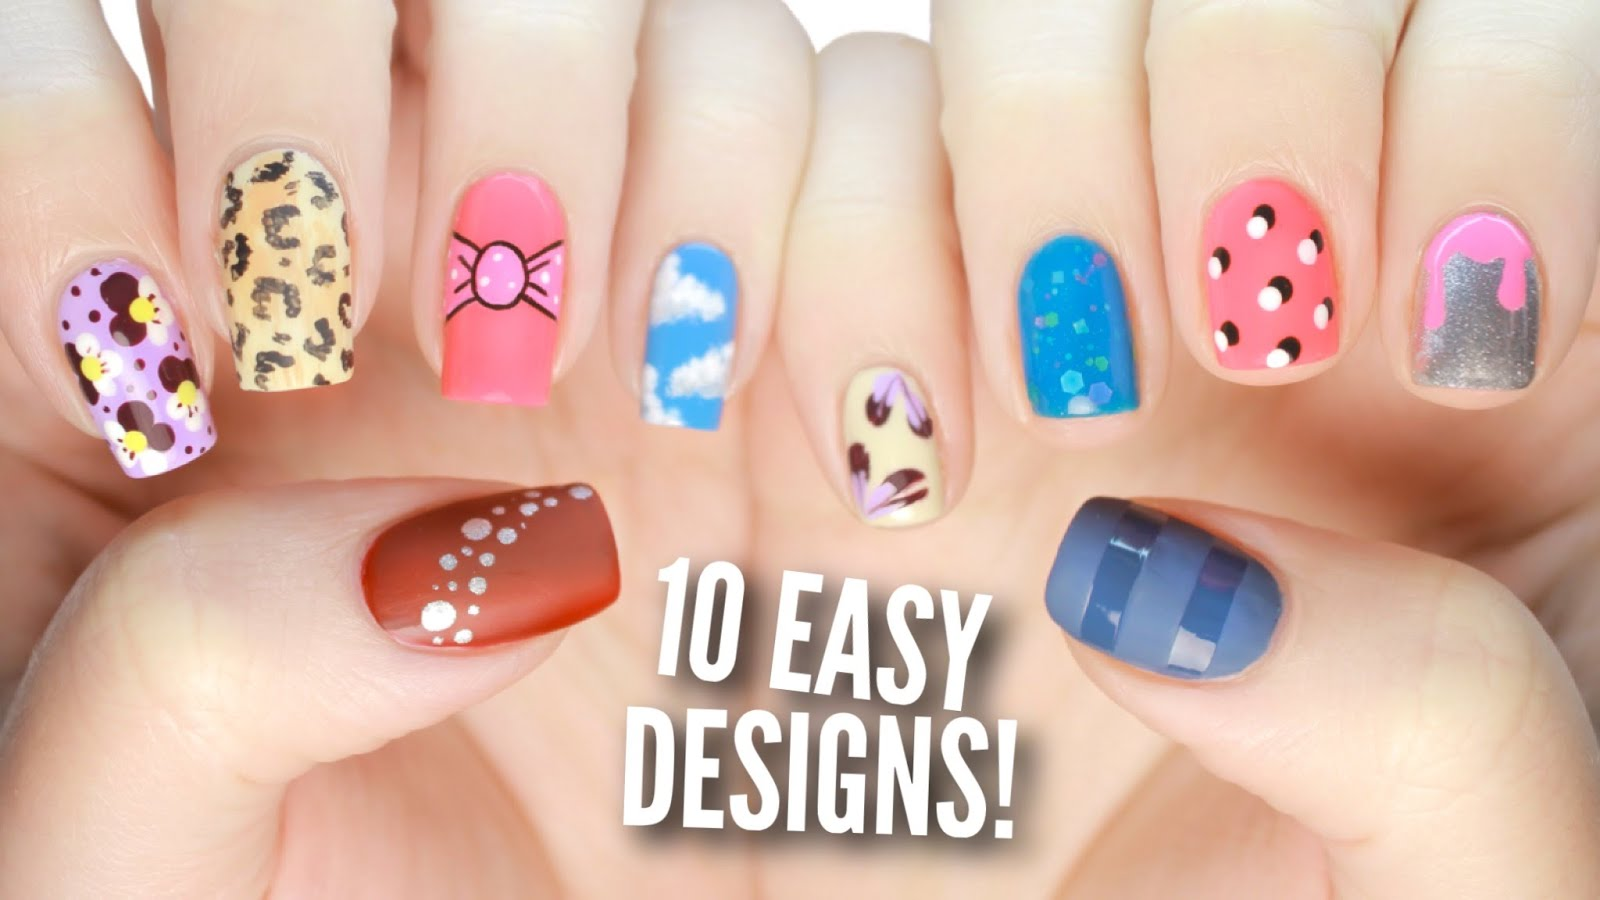 10 Easy Nail Art Designs for Beginners- Tutorial Part 2